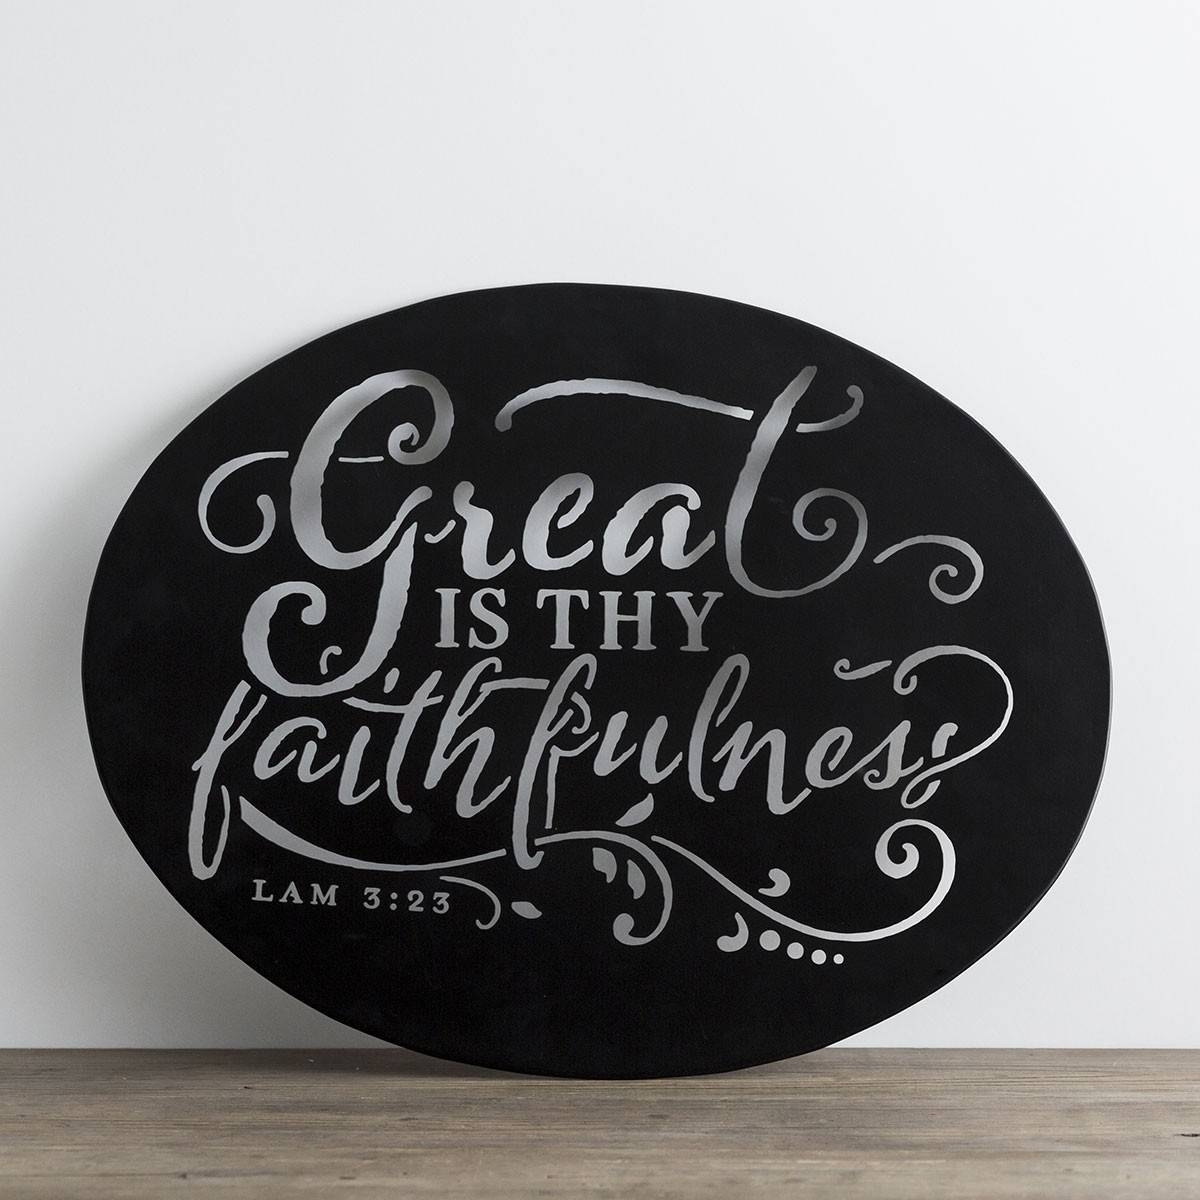 Christian Metal Wall Art – Great Is Thy Faithfulness | Dayspring With Recent Christian Metal Wall Art (View 5 of 20)